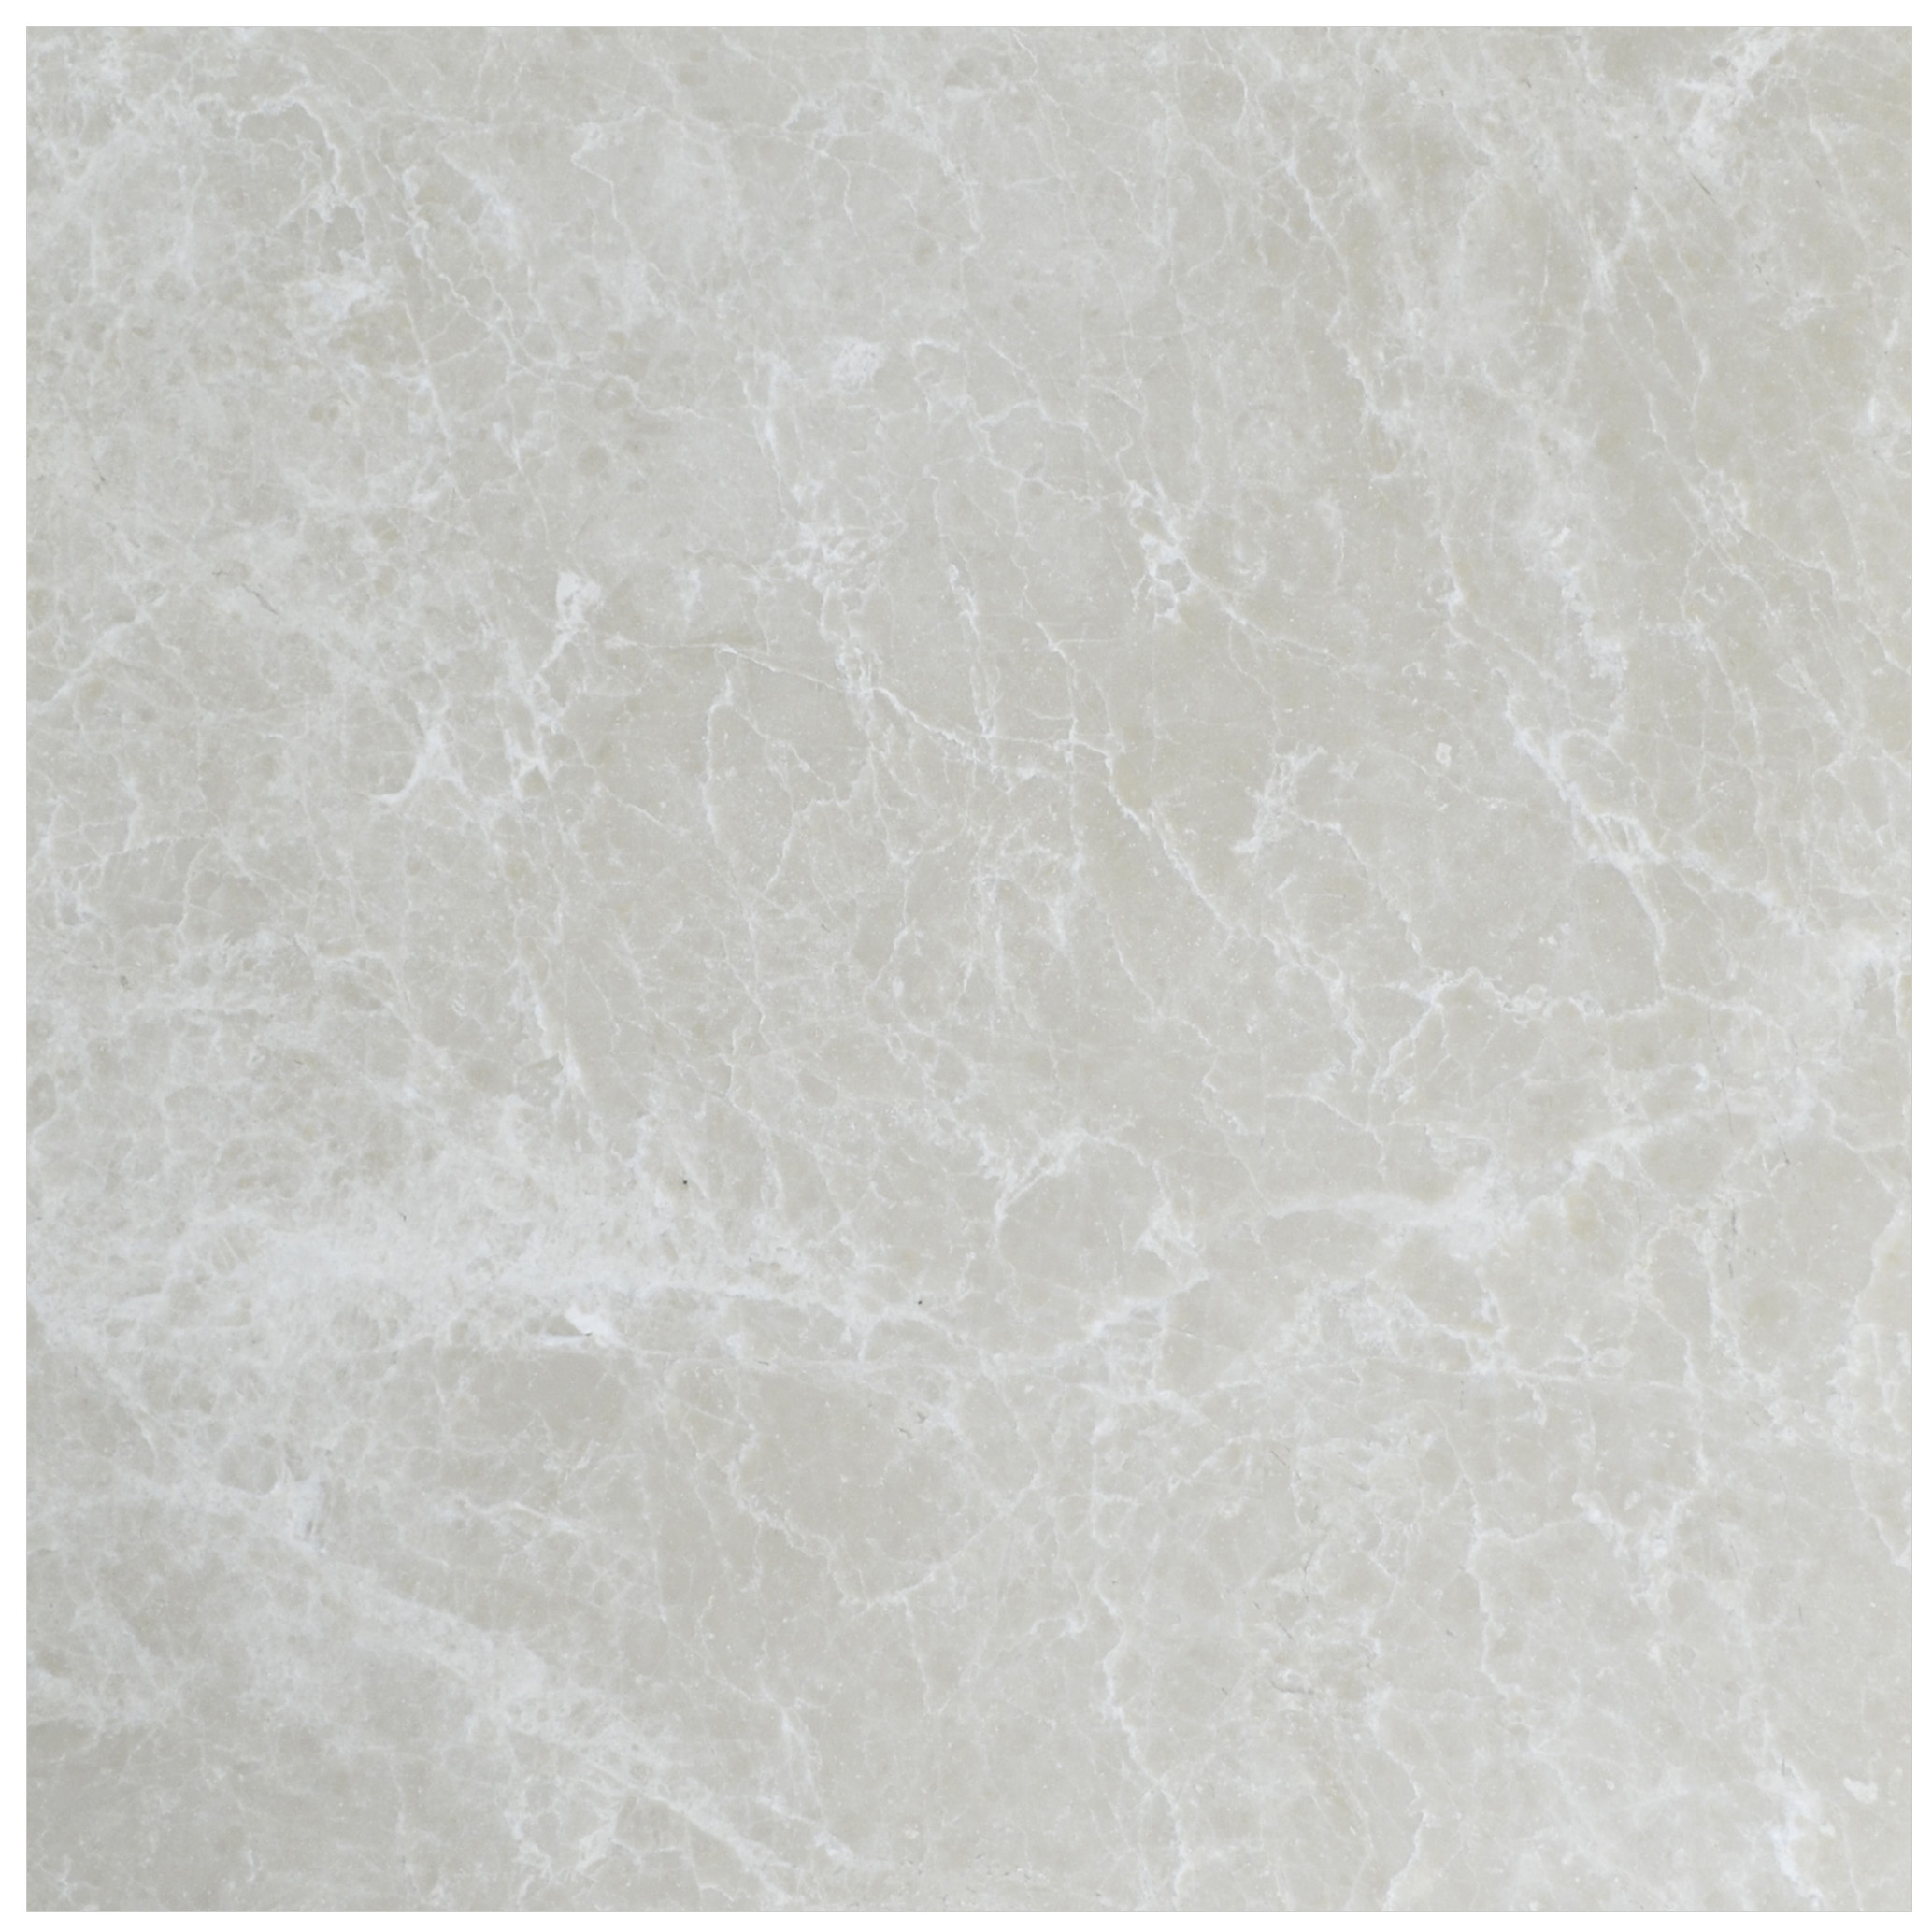 Botticino Beige Polished Marble Tiles 18x18 Natural